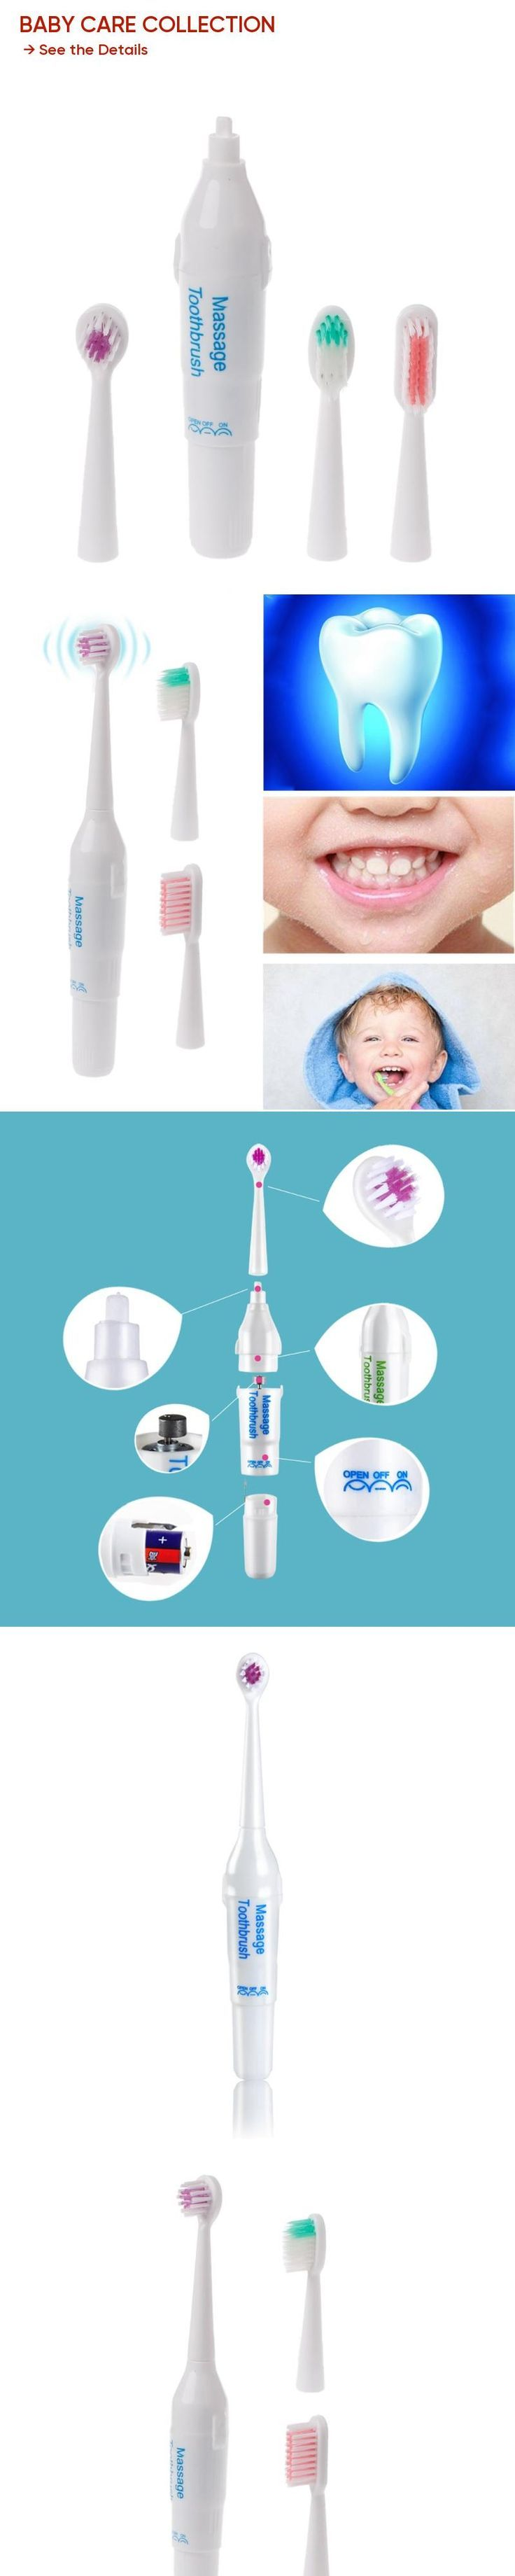 Professional Power Baby Toothbrush Oral Care Clean Kids Electric Teeth Brush